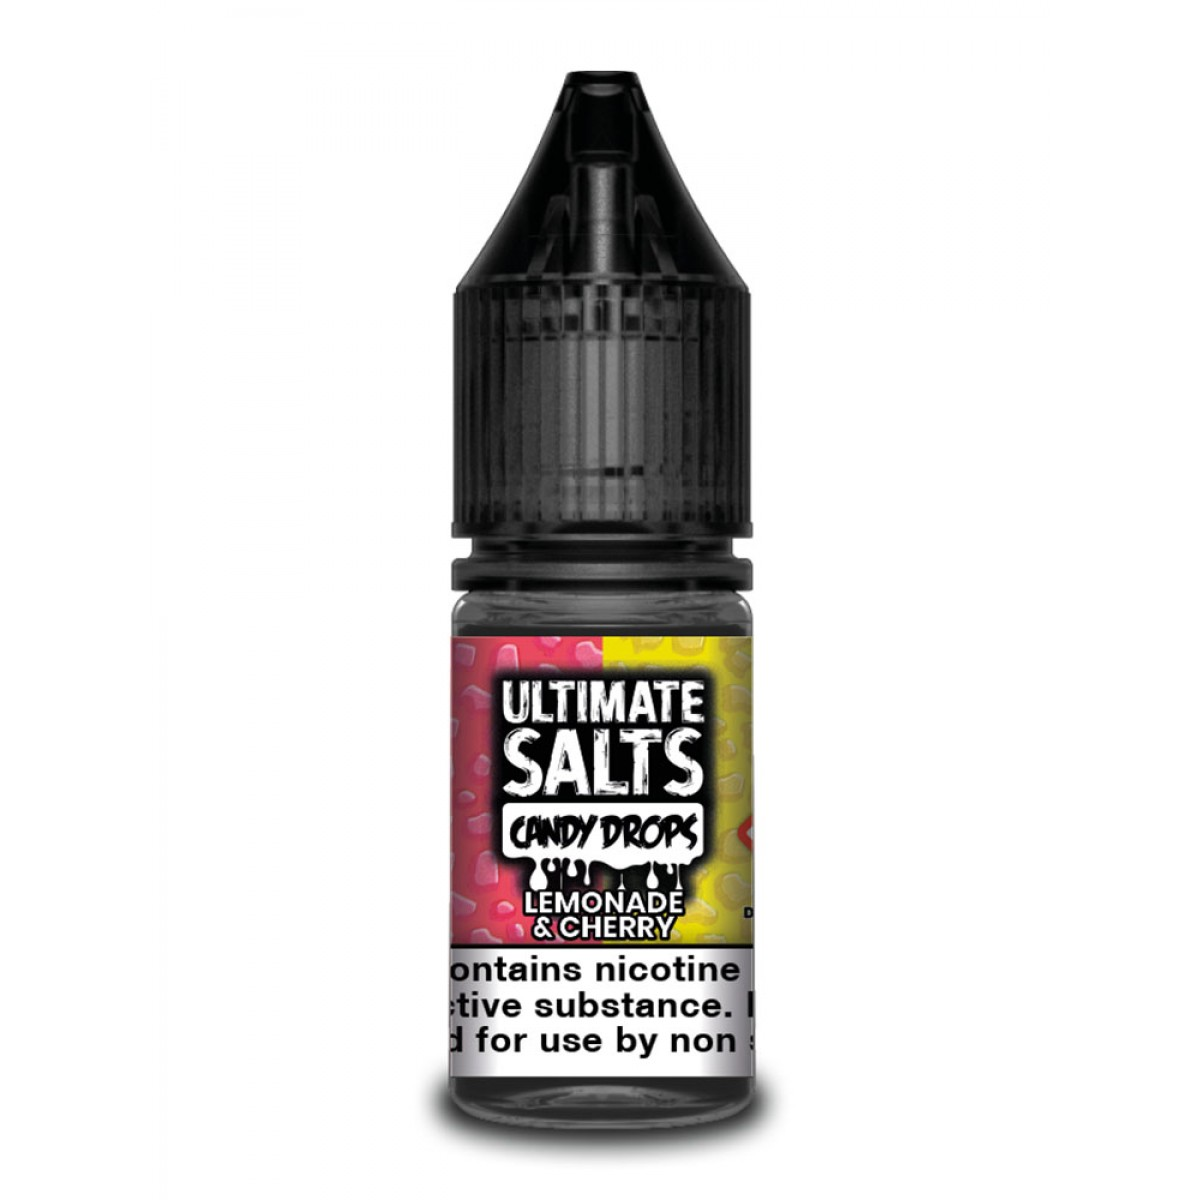 LEMONADE & CHERRY BY ULTIMATE SALTS CANDY DROPS